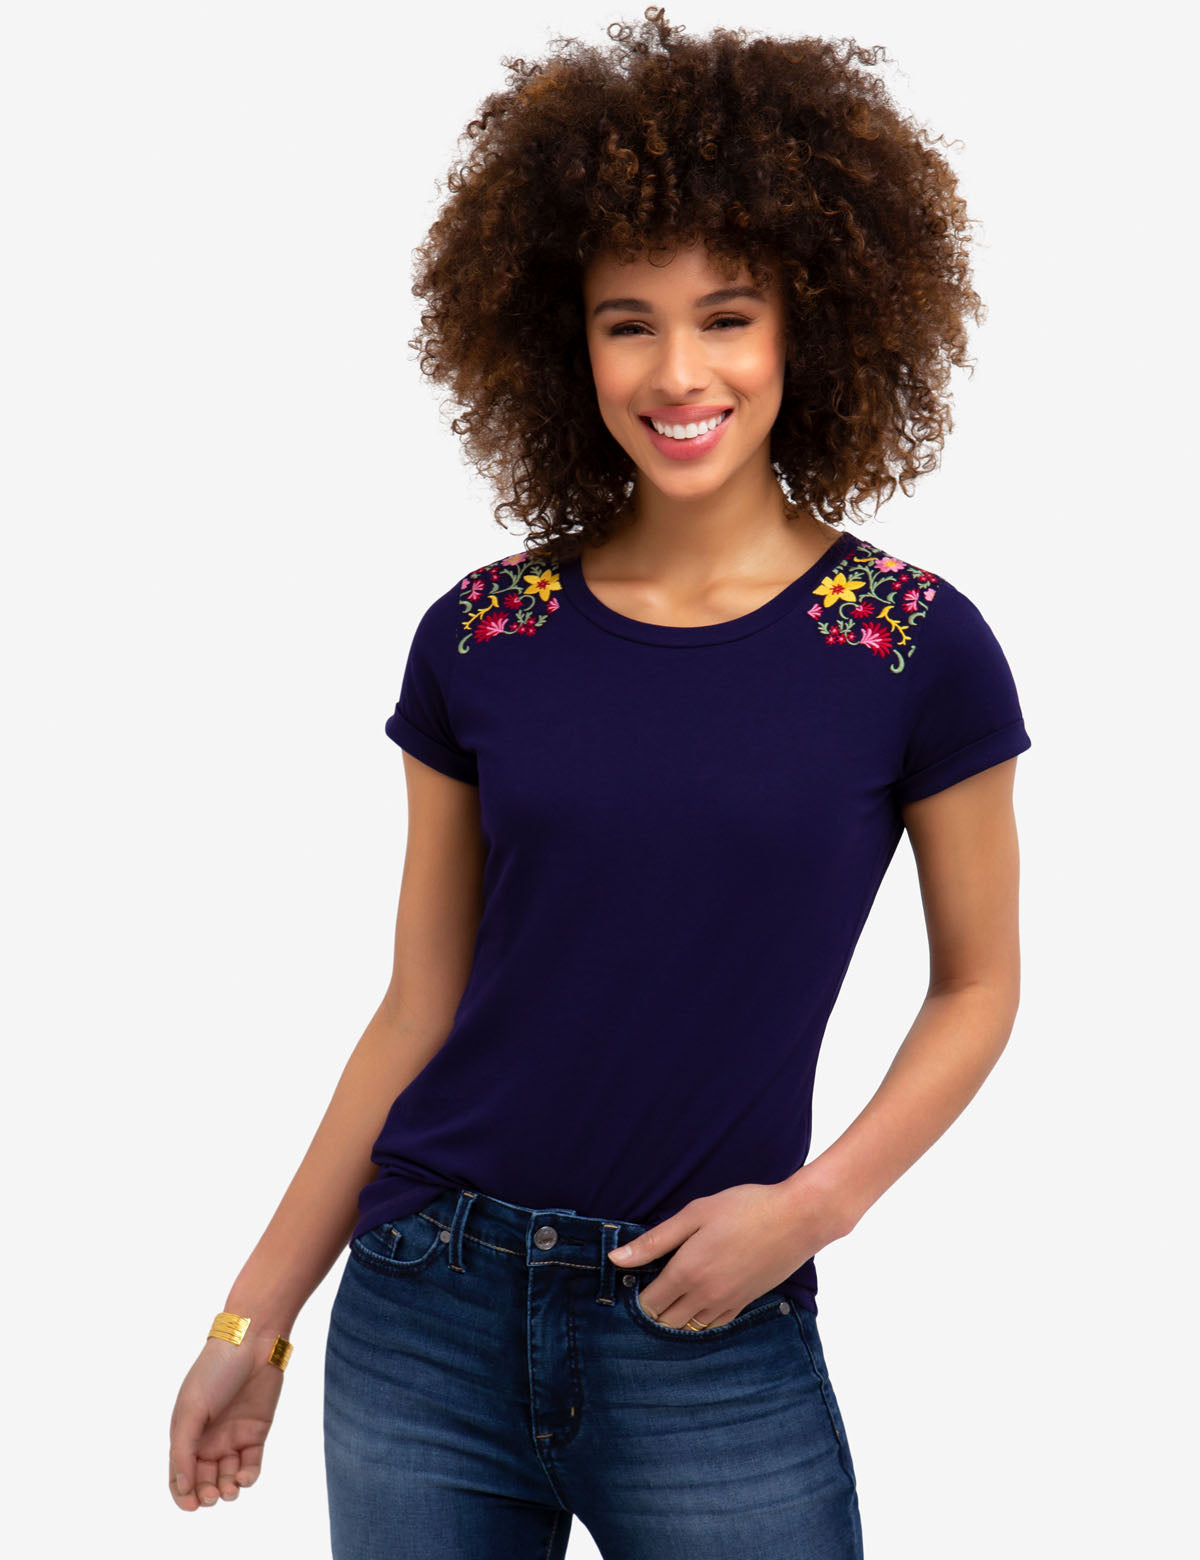 FLORAL EMBROIDERED T-SHIRT - U.S. Polo Assn.